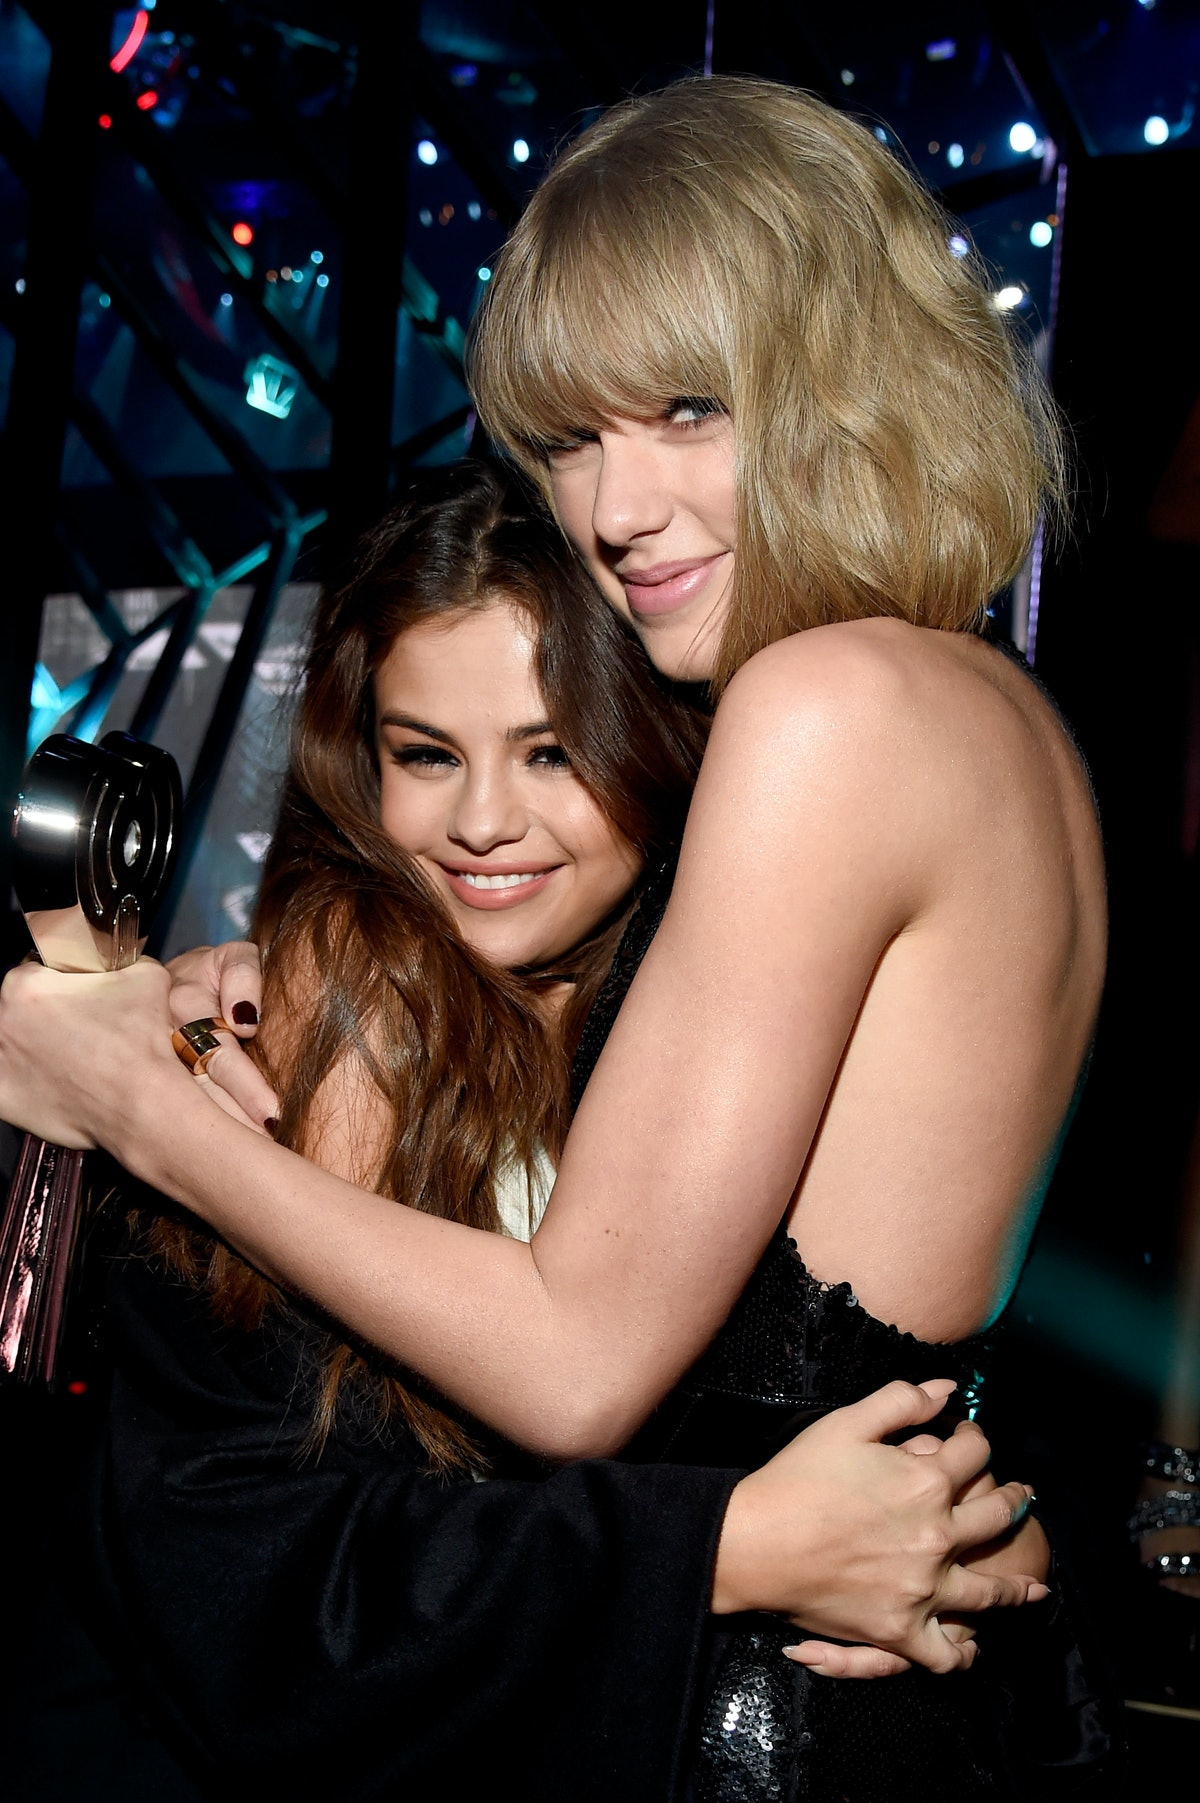 INGLEWOOD, CALIFORNIA - APRIL 03:  Recording artists Selena Gomez and Taylor Swift backstage at the iHeartRadio Music Awards which broadcasted live on TBS, TNT, AND TRUTV from The Forum on April 3, 2016 in Inglewood, California.  (Photo by Kevin Mazur/Getty Images for iHeartRadio / Turner)